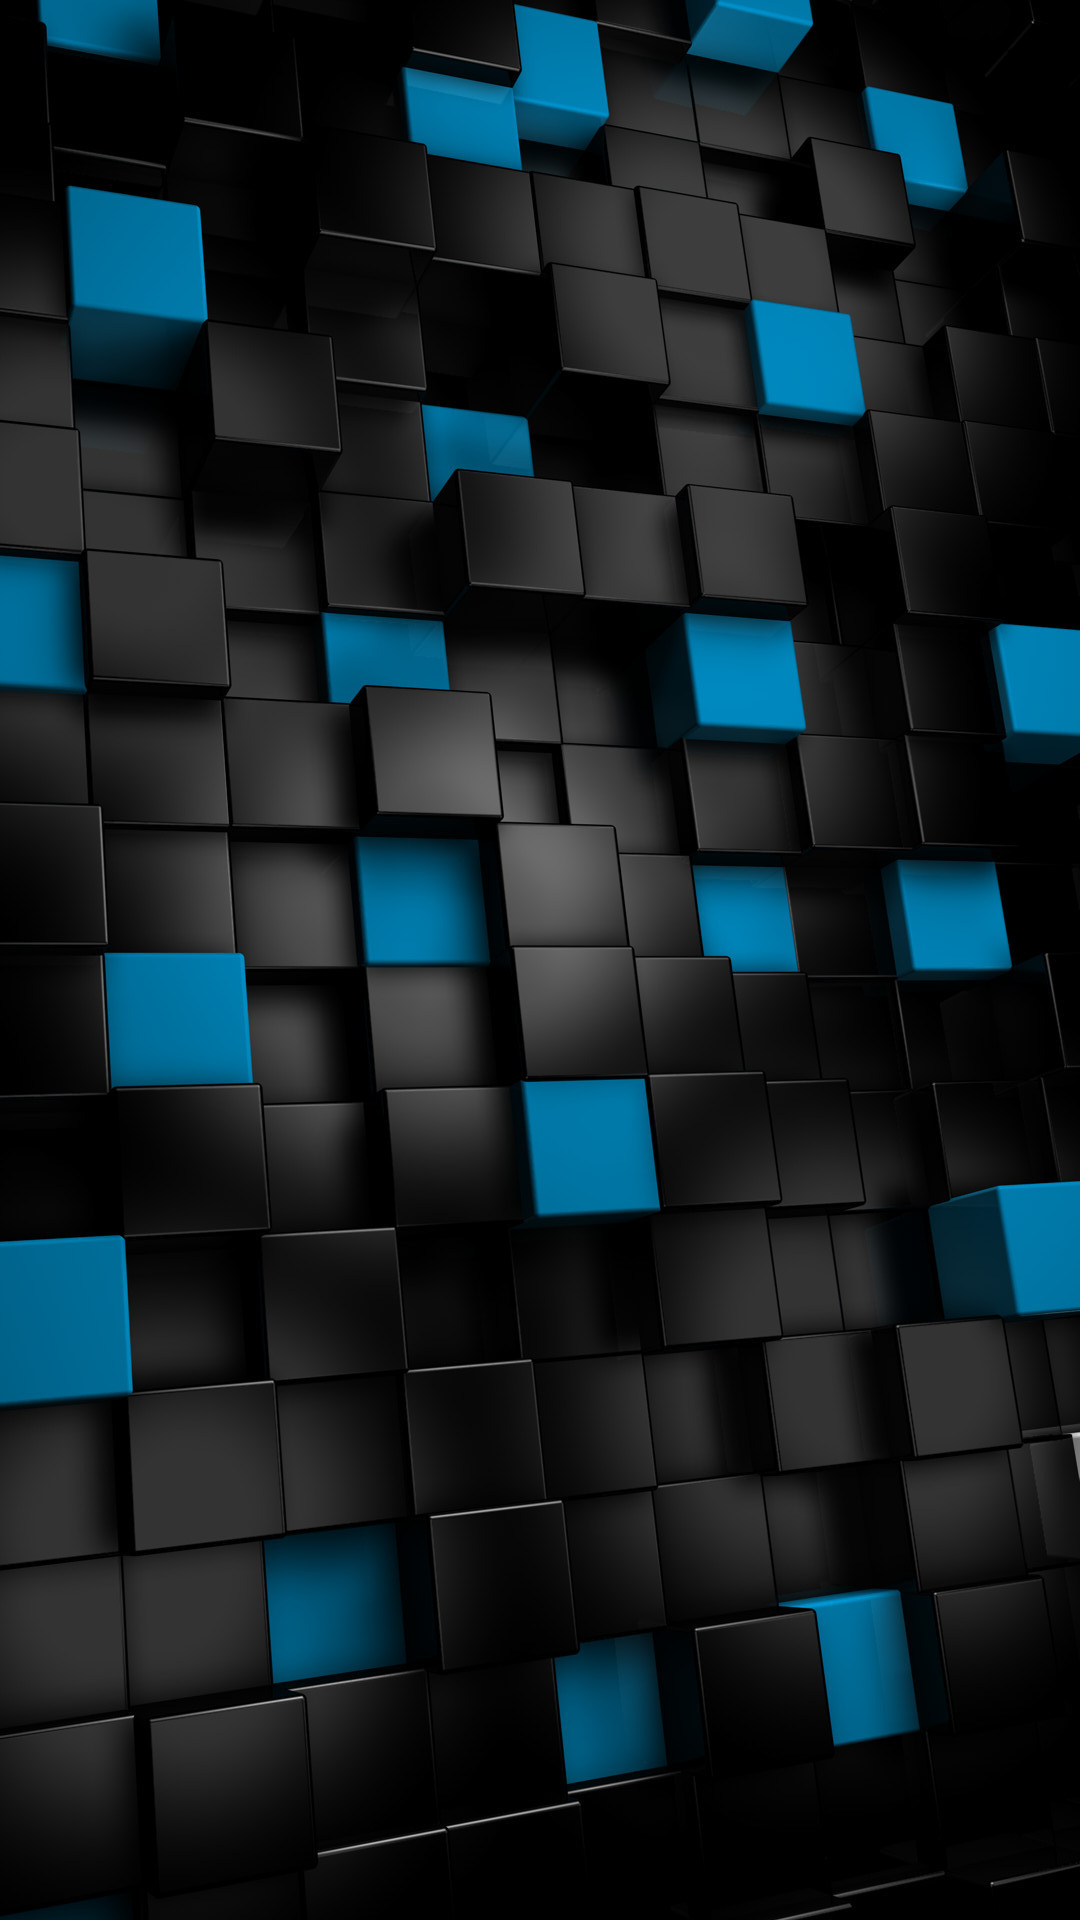 Abstract black cubes   Best htc one wallpapers and 1080x1920